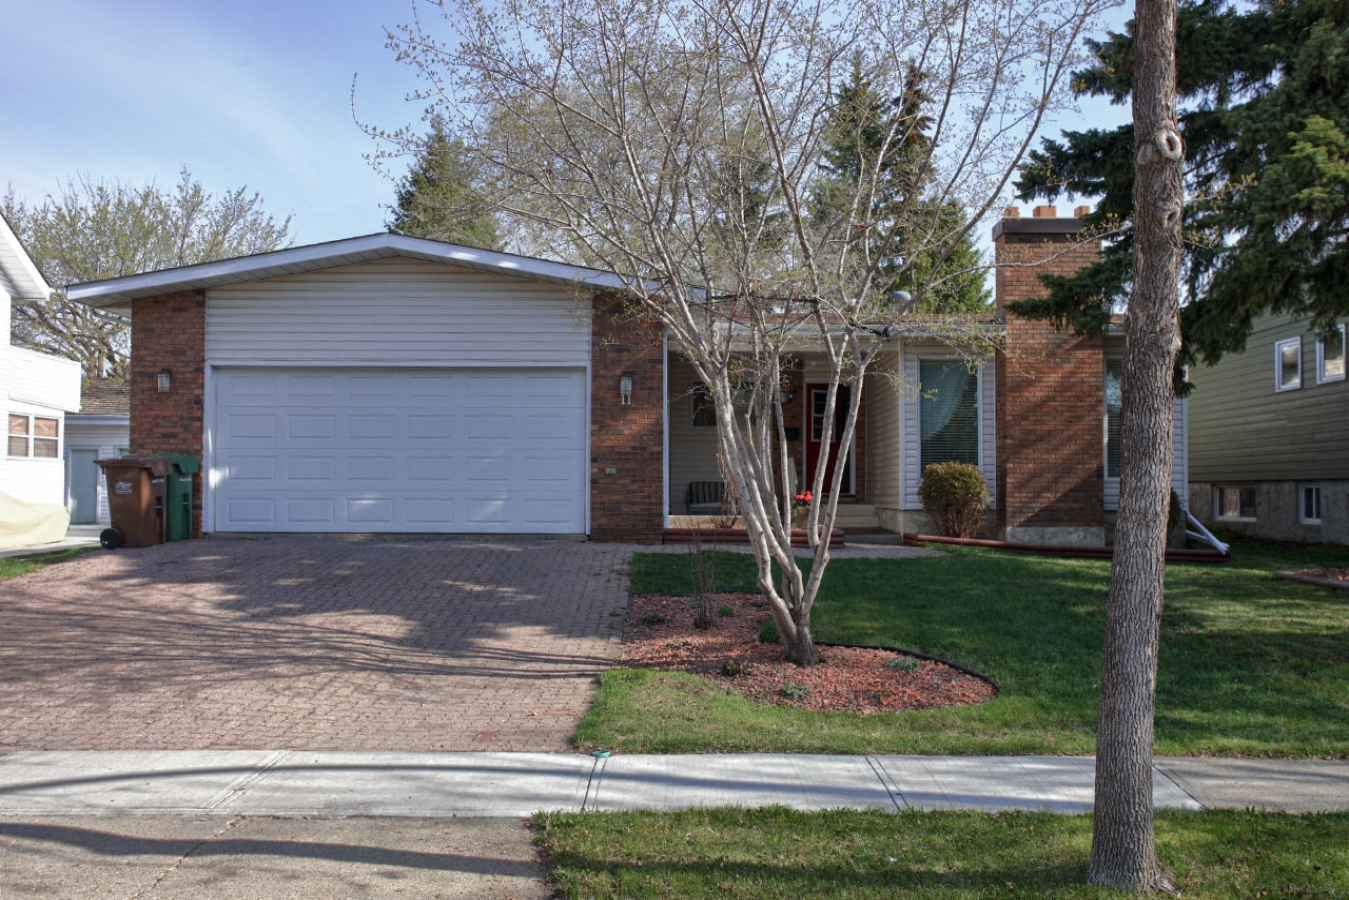 Main Photo: 11 Andrew Crescent in St. Albert: House for rent